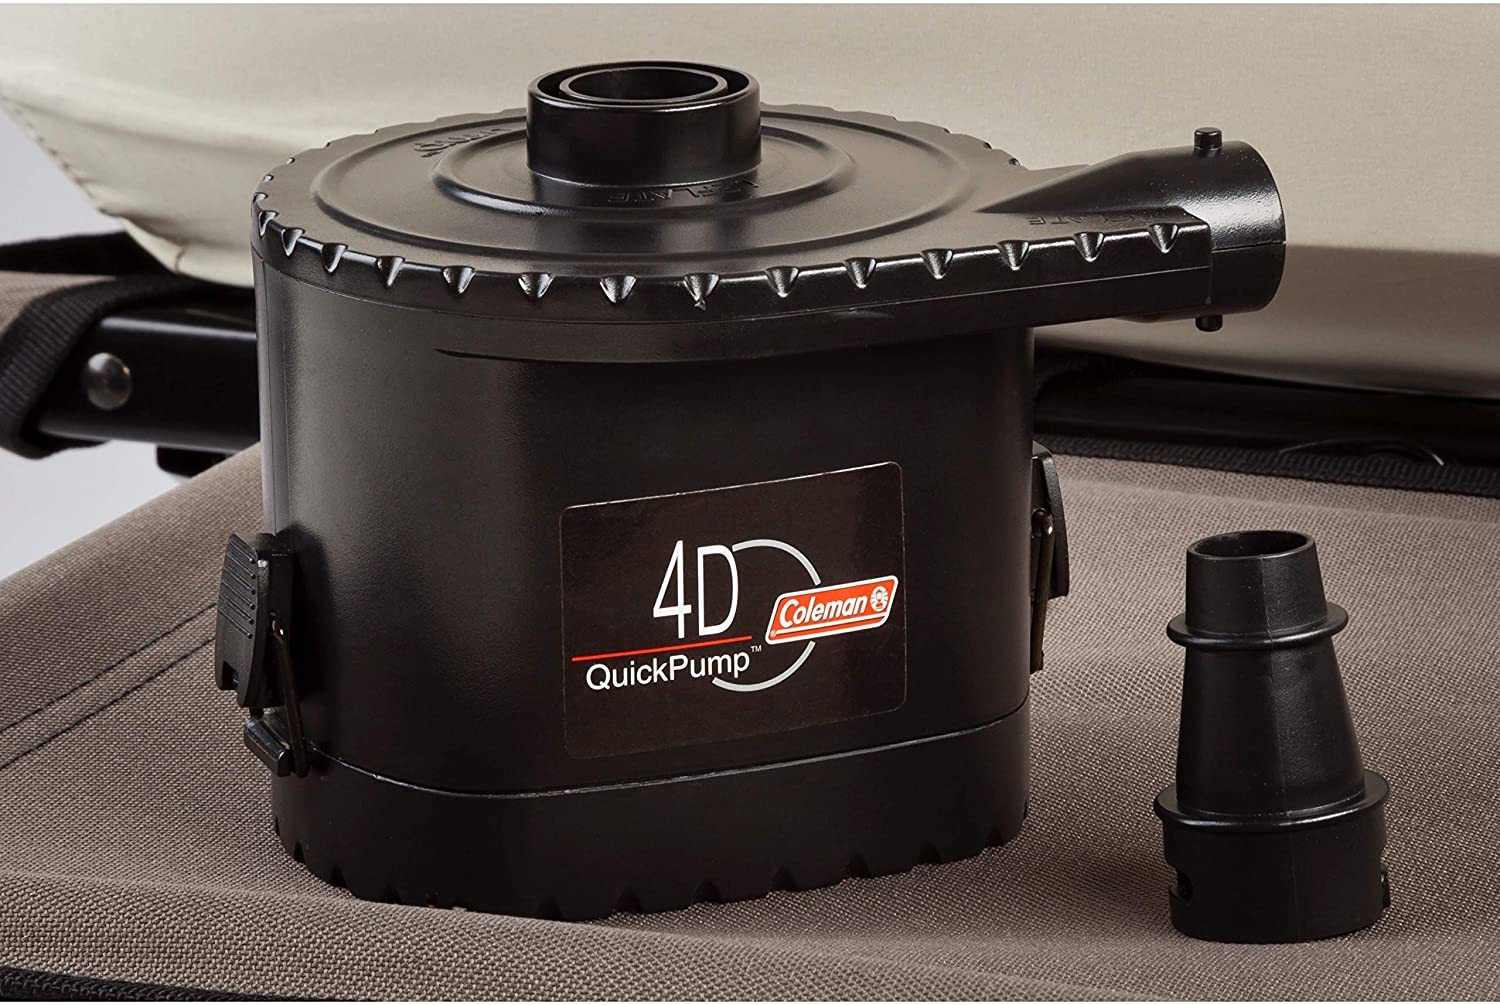 Coleman Airbed Cot Reviews - 4D Battery Pump